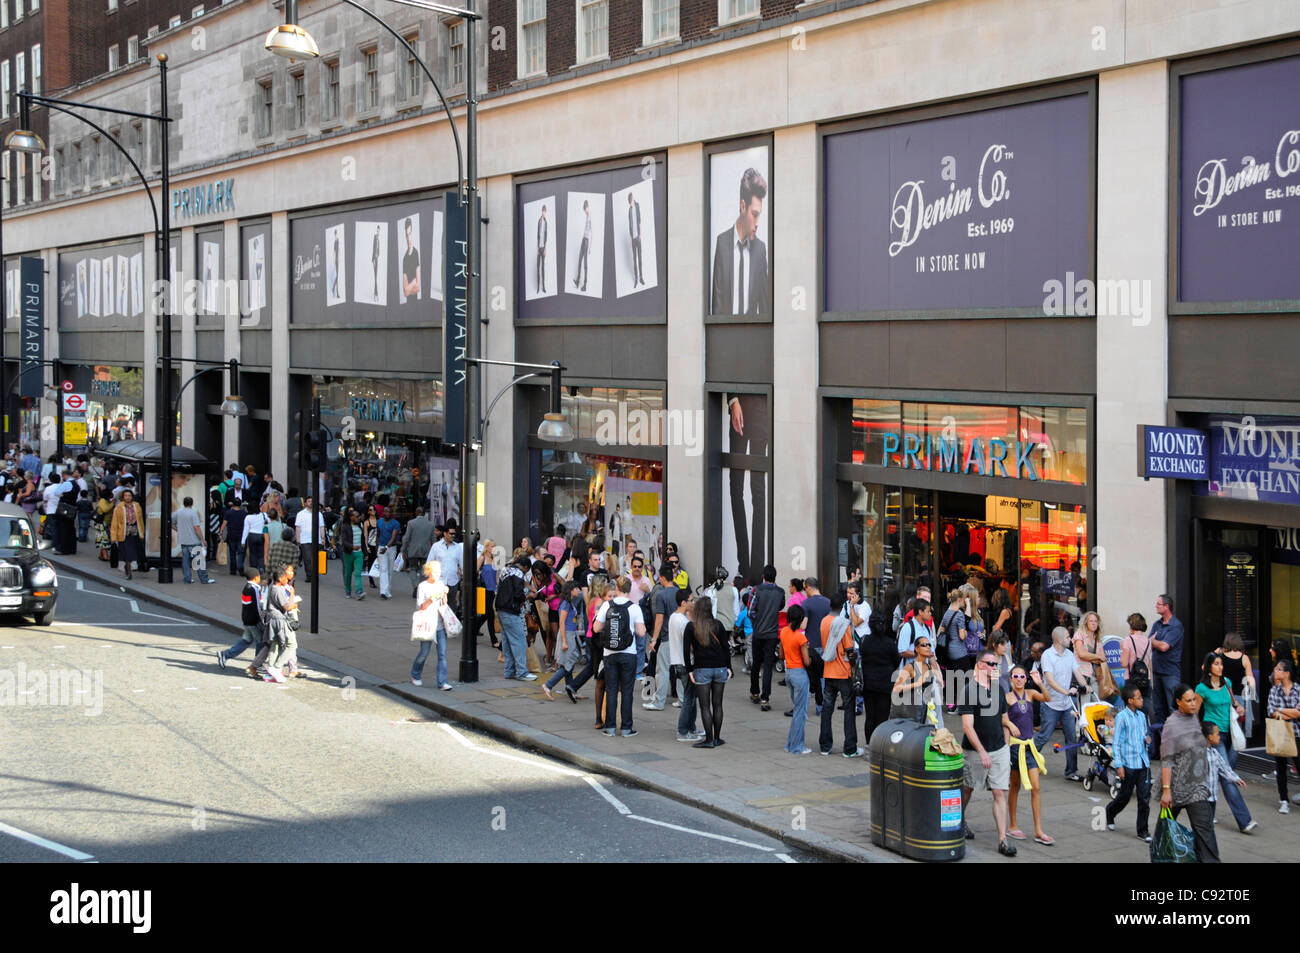 Great Clothing Stores In London